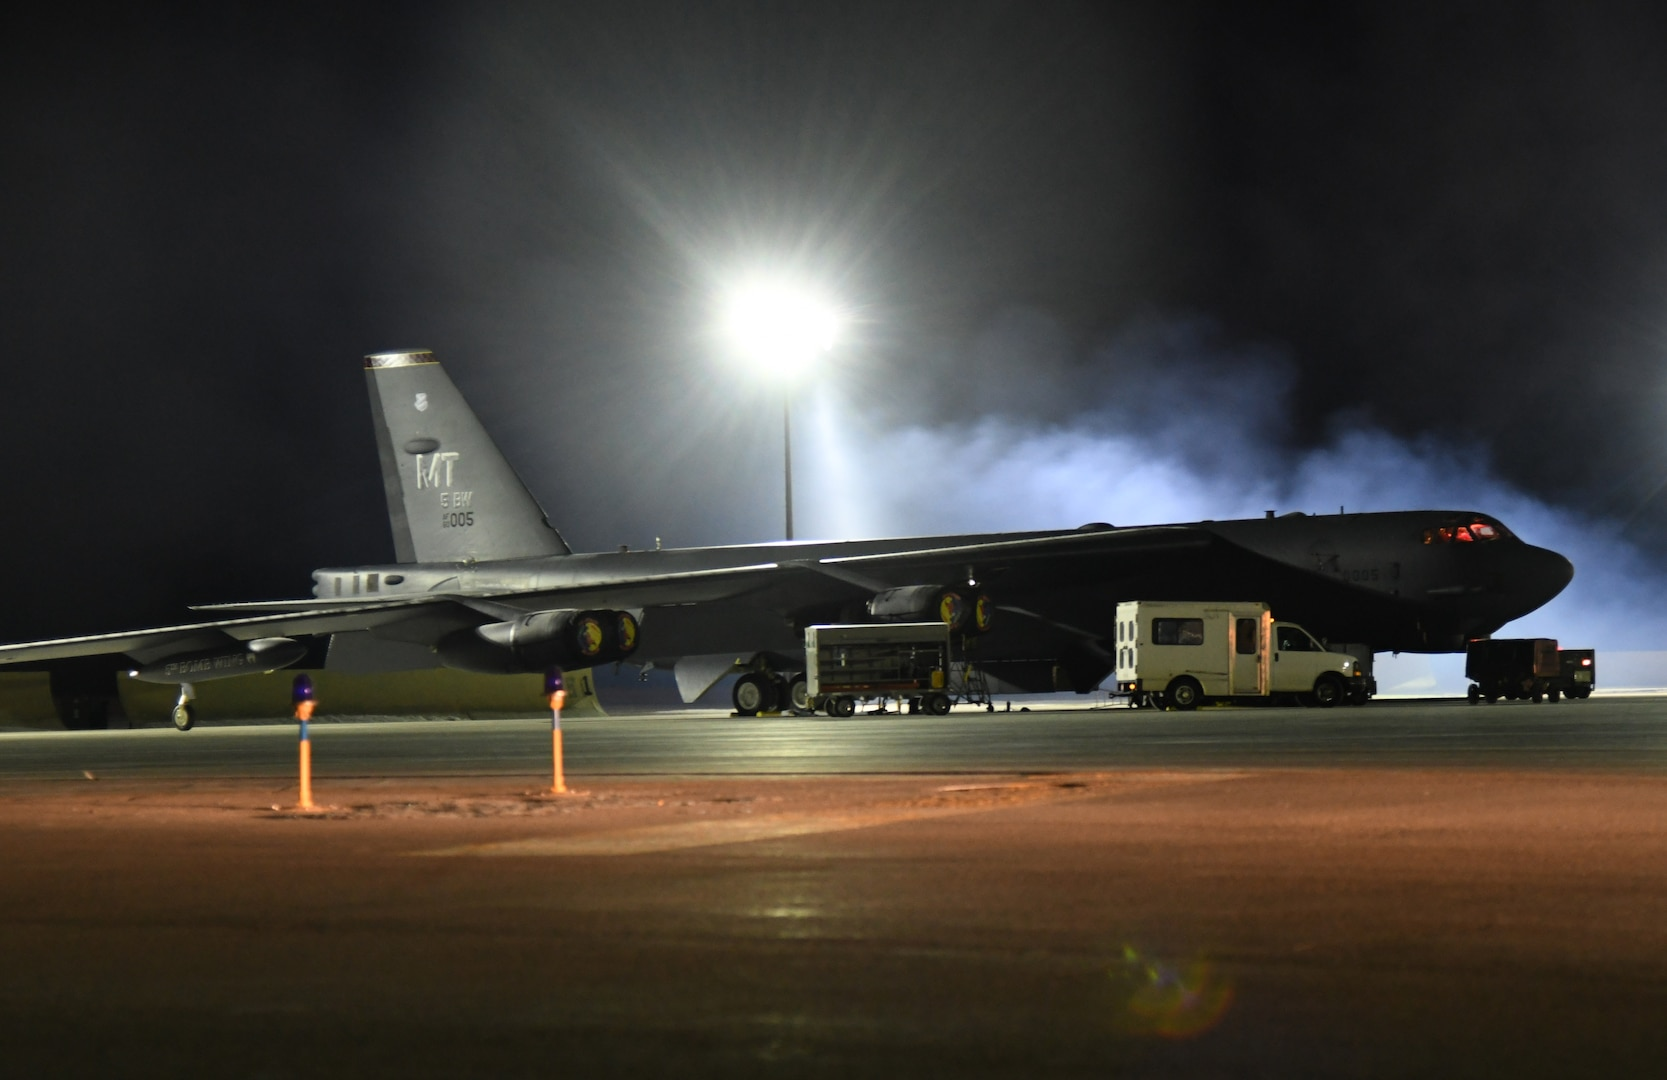 A B-52H Stratofortress prepares for takeoff from the flightline at Minot Air Force Base, North Dakota, Feb. 1, 2020, as part of a bomber task force mission. U.S. Strategic Command bomber forces regularly conduct combined theater security cooperation engagements with allies and partners, demonstrating the U.S. capability to command, control and conduct bomber missions across the globe. (U.S. Air Force photo by Airman 1st Class Caleb Kimmell)